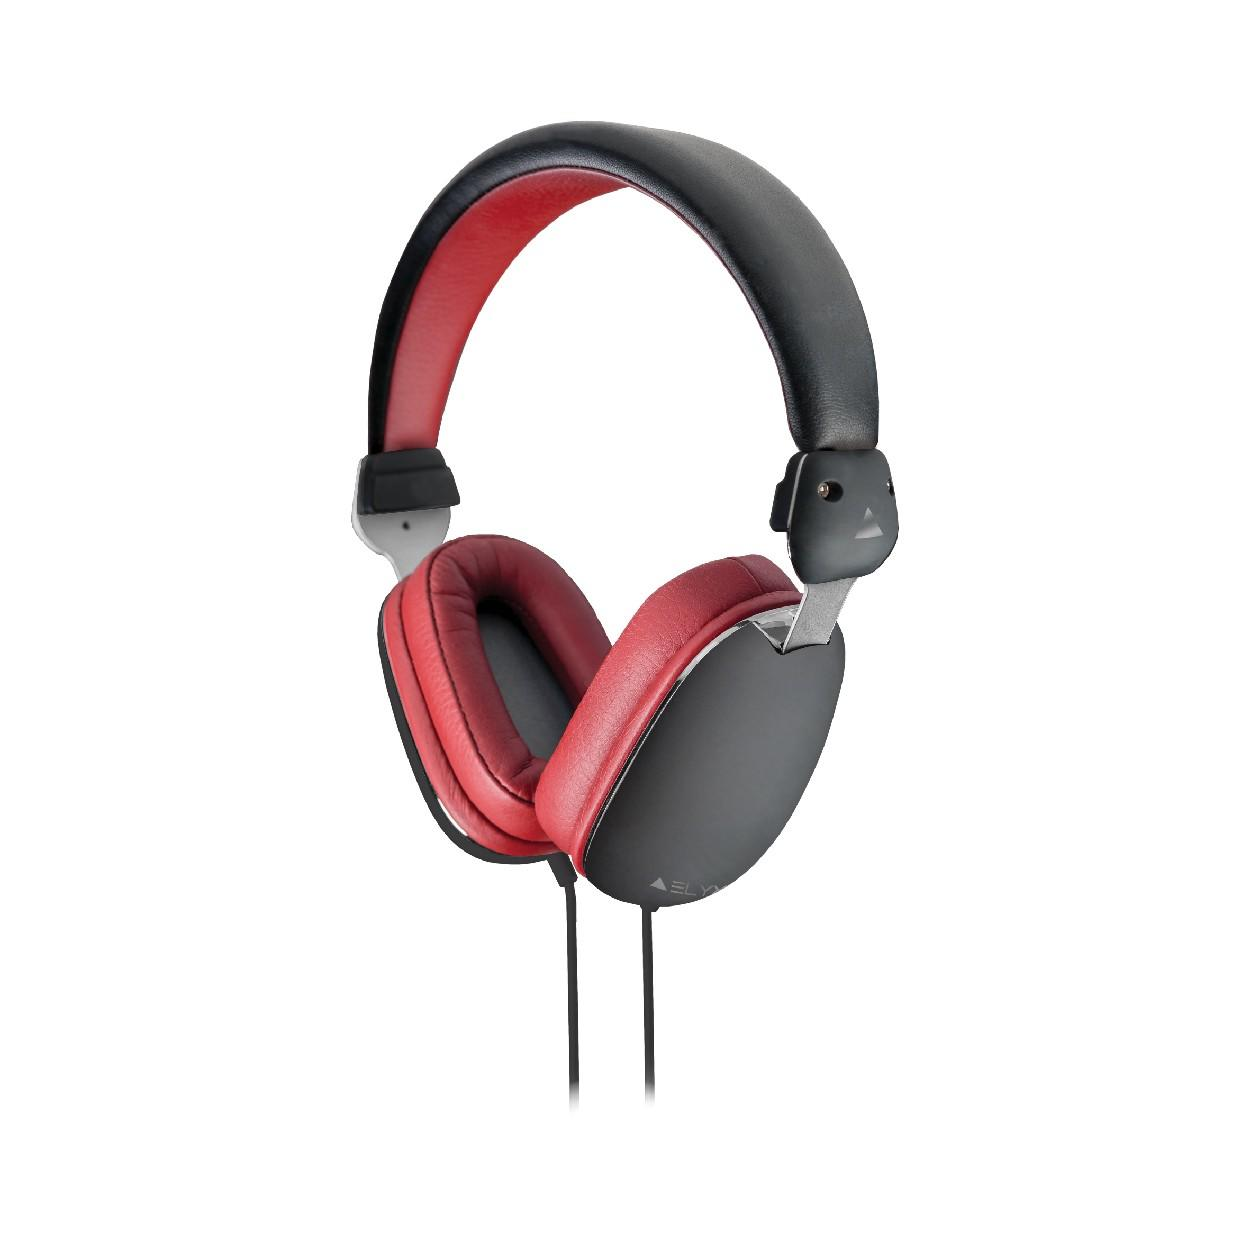 Elyxr Fusion On-Ear Headphones - Black and Burgundy